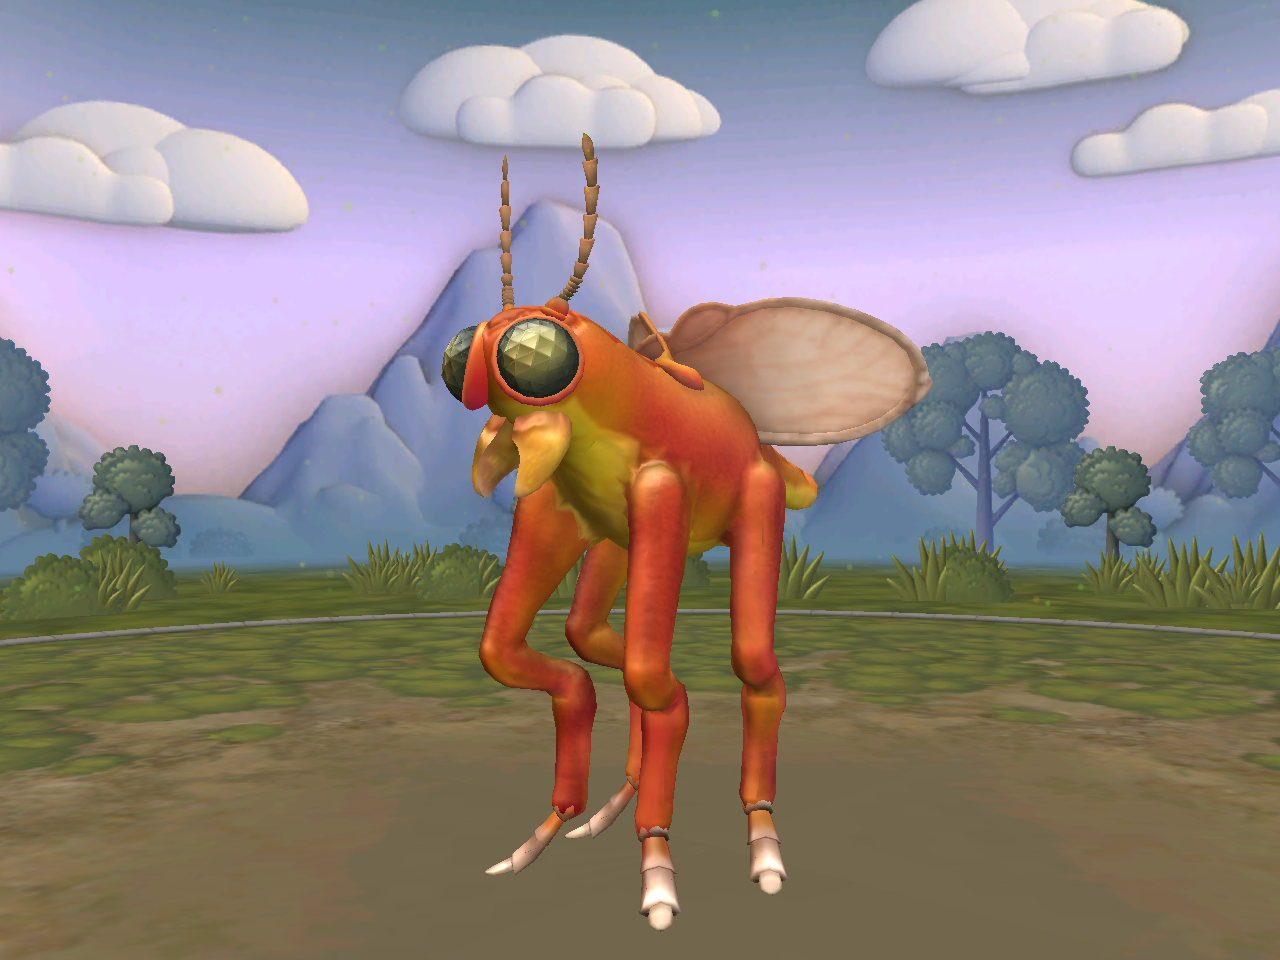 Giant Fly